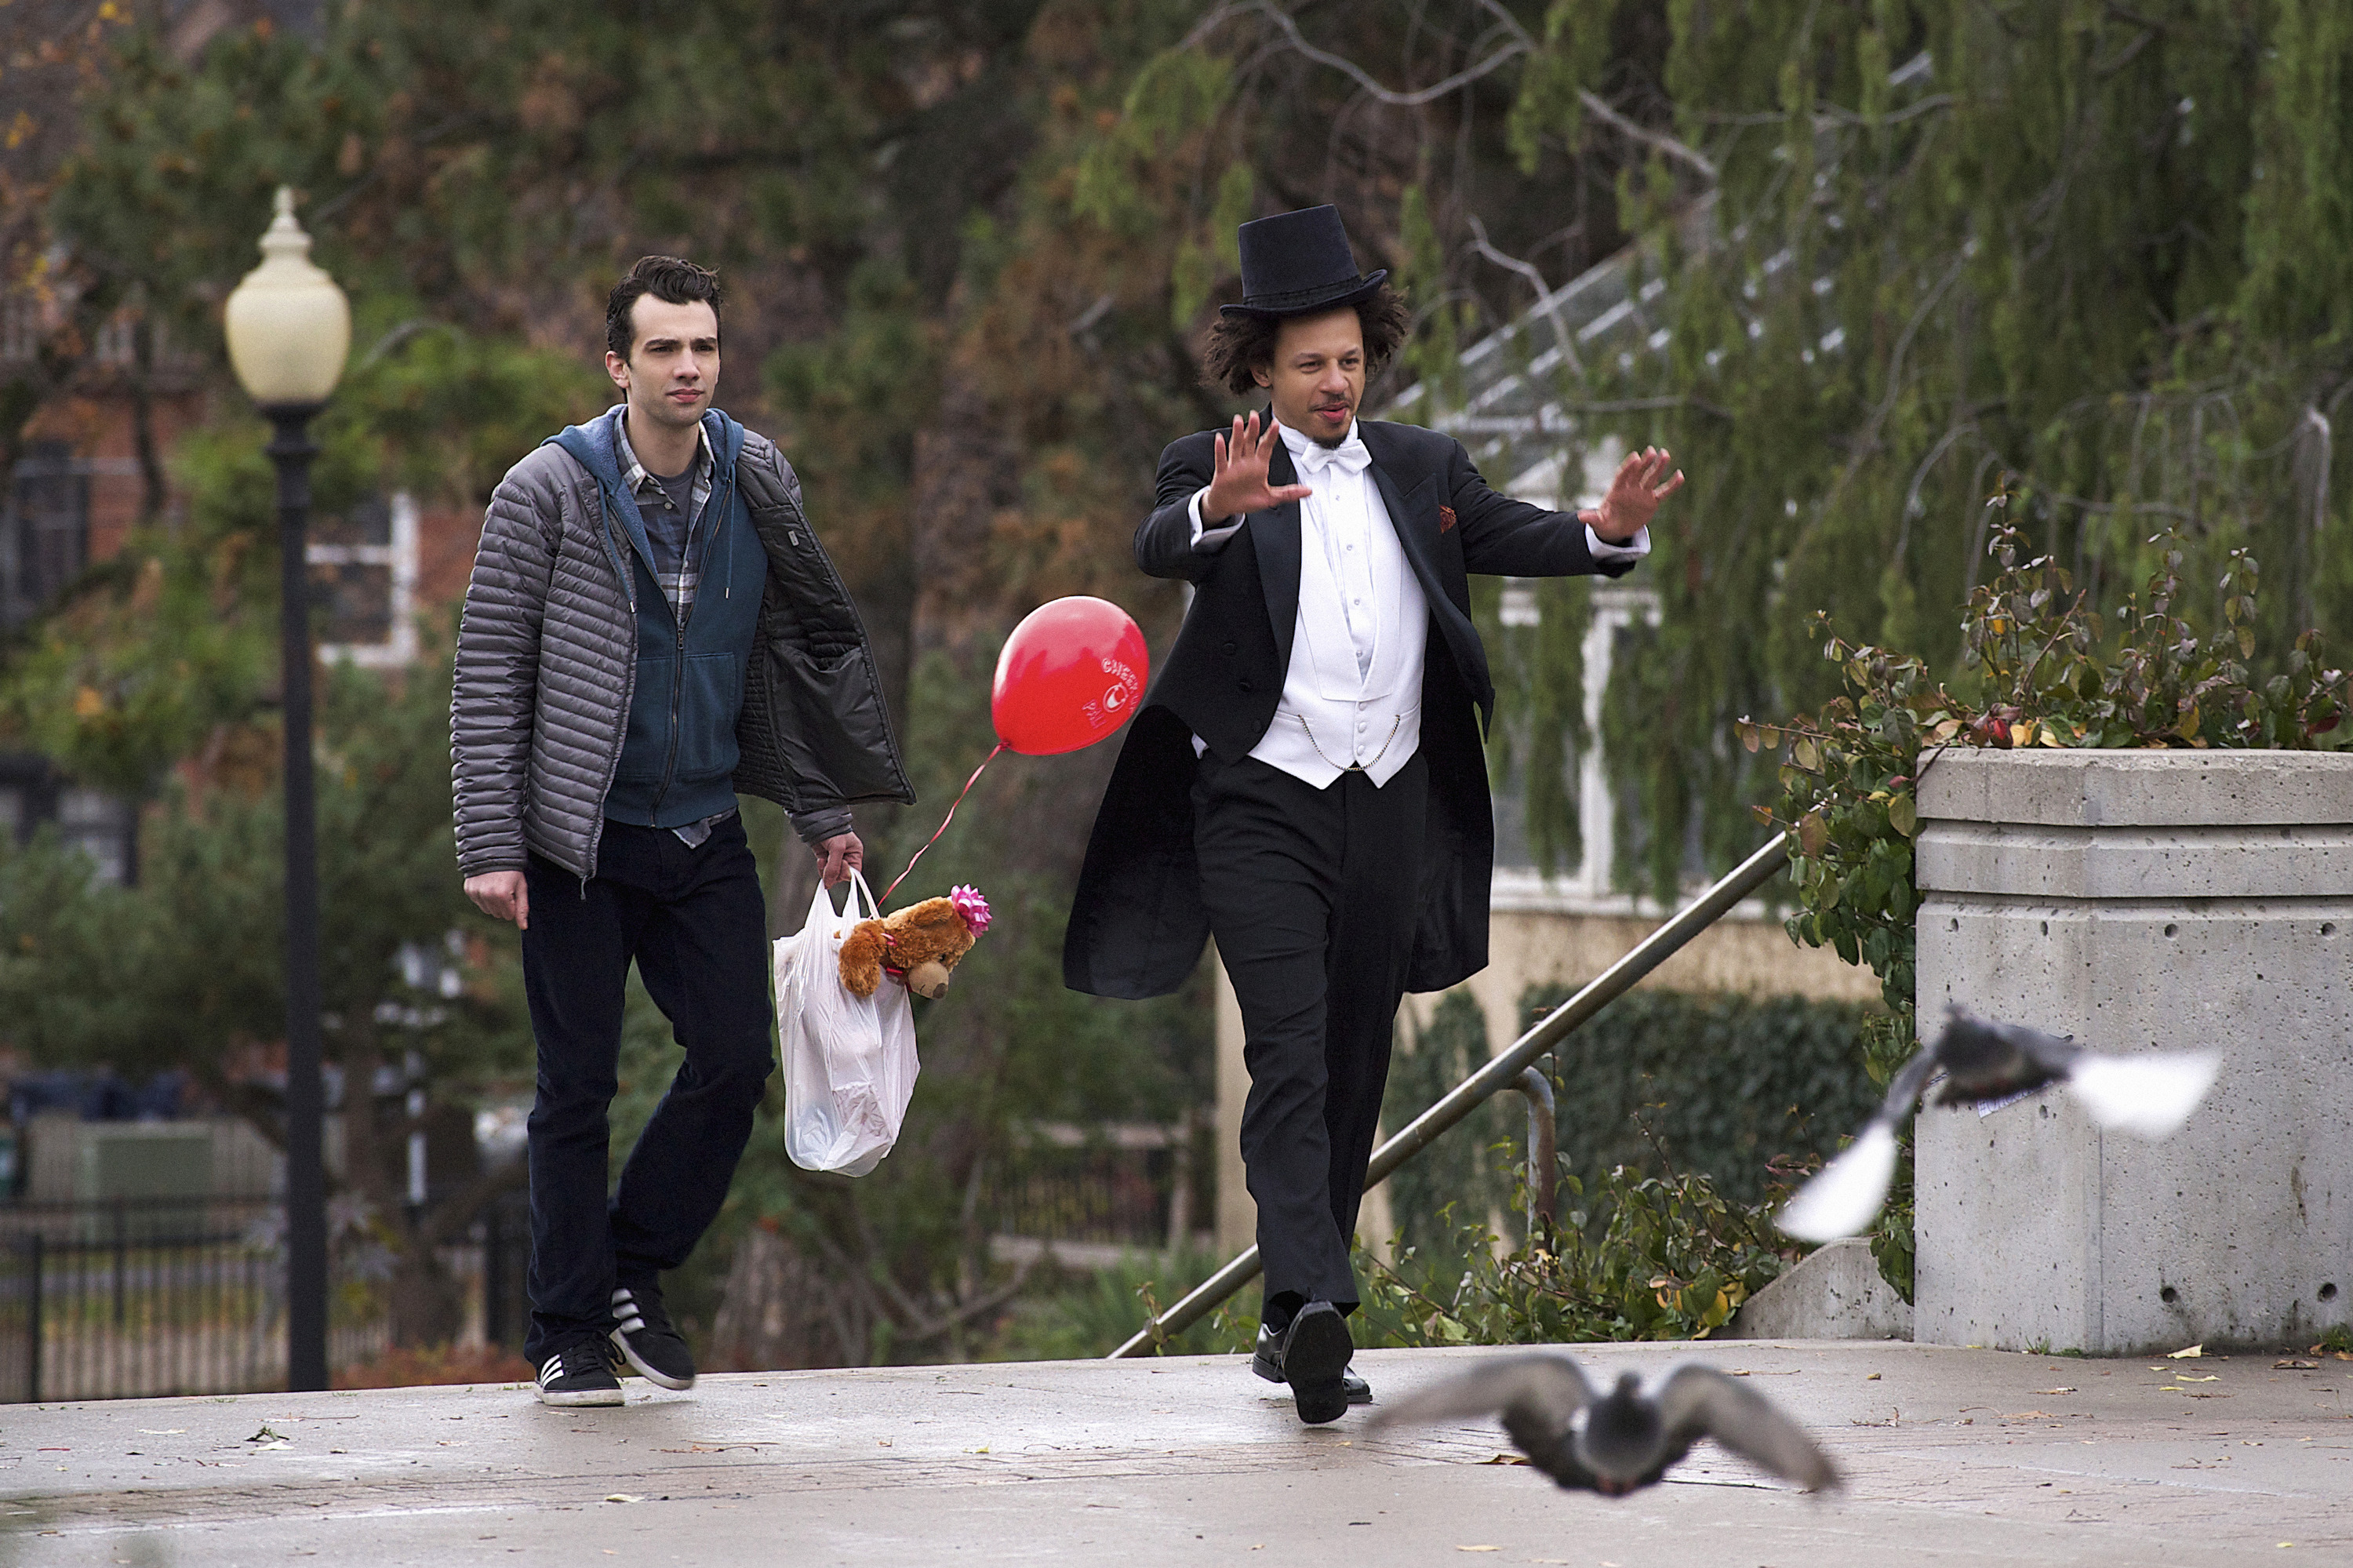 man seeking woman fxx review Fxx renewed the hyper-surreal millennial sitcom man seeking woman for a third season.